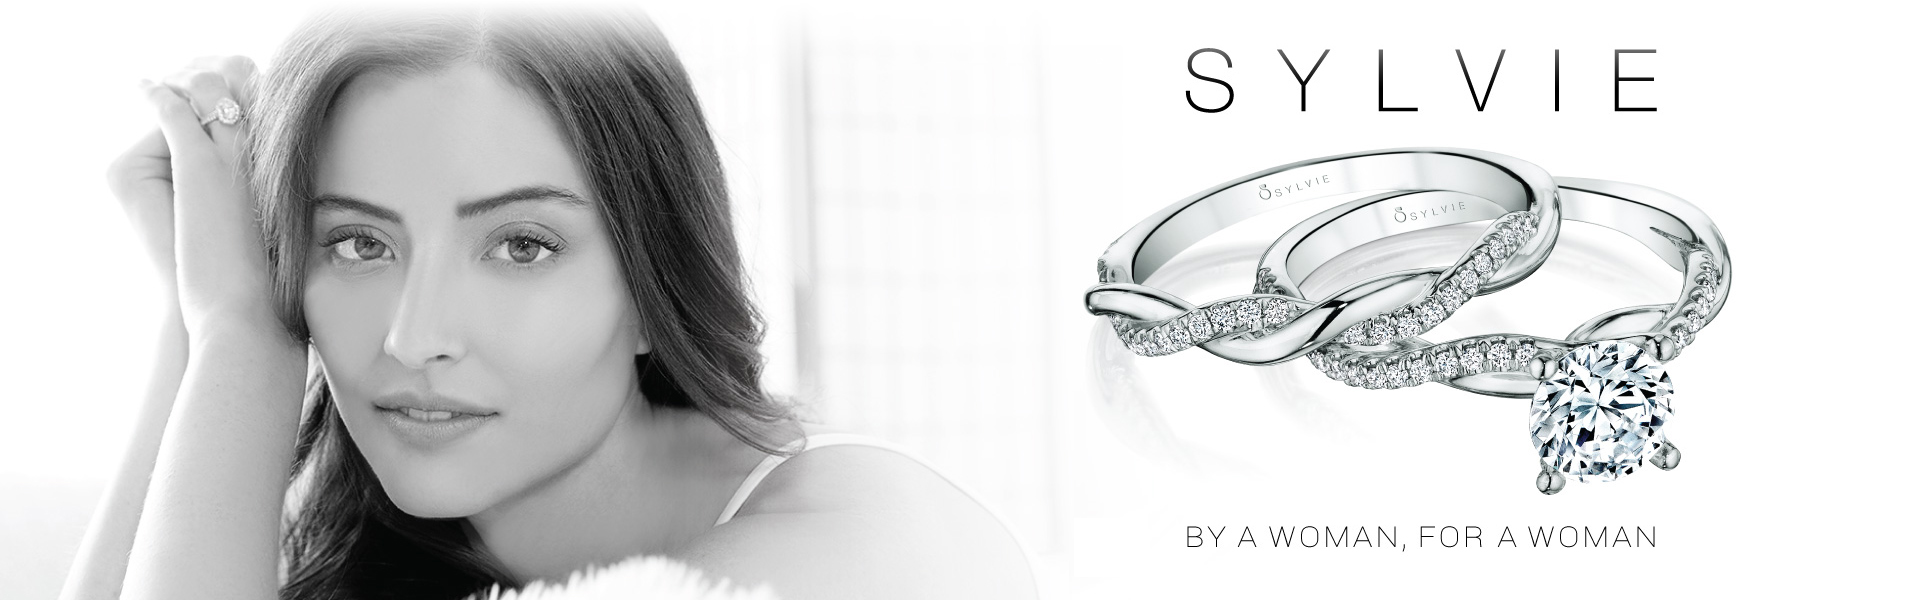 Diamond engagement rings from the Sylvie Collection